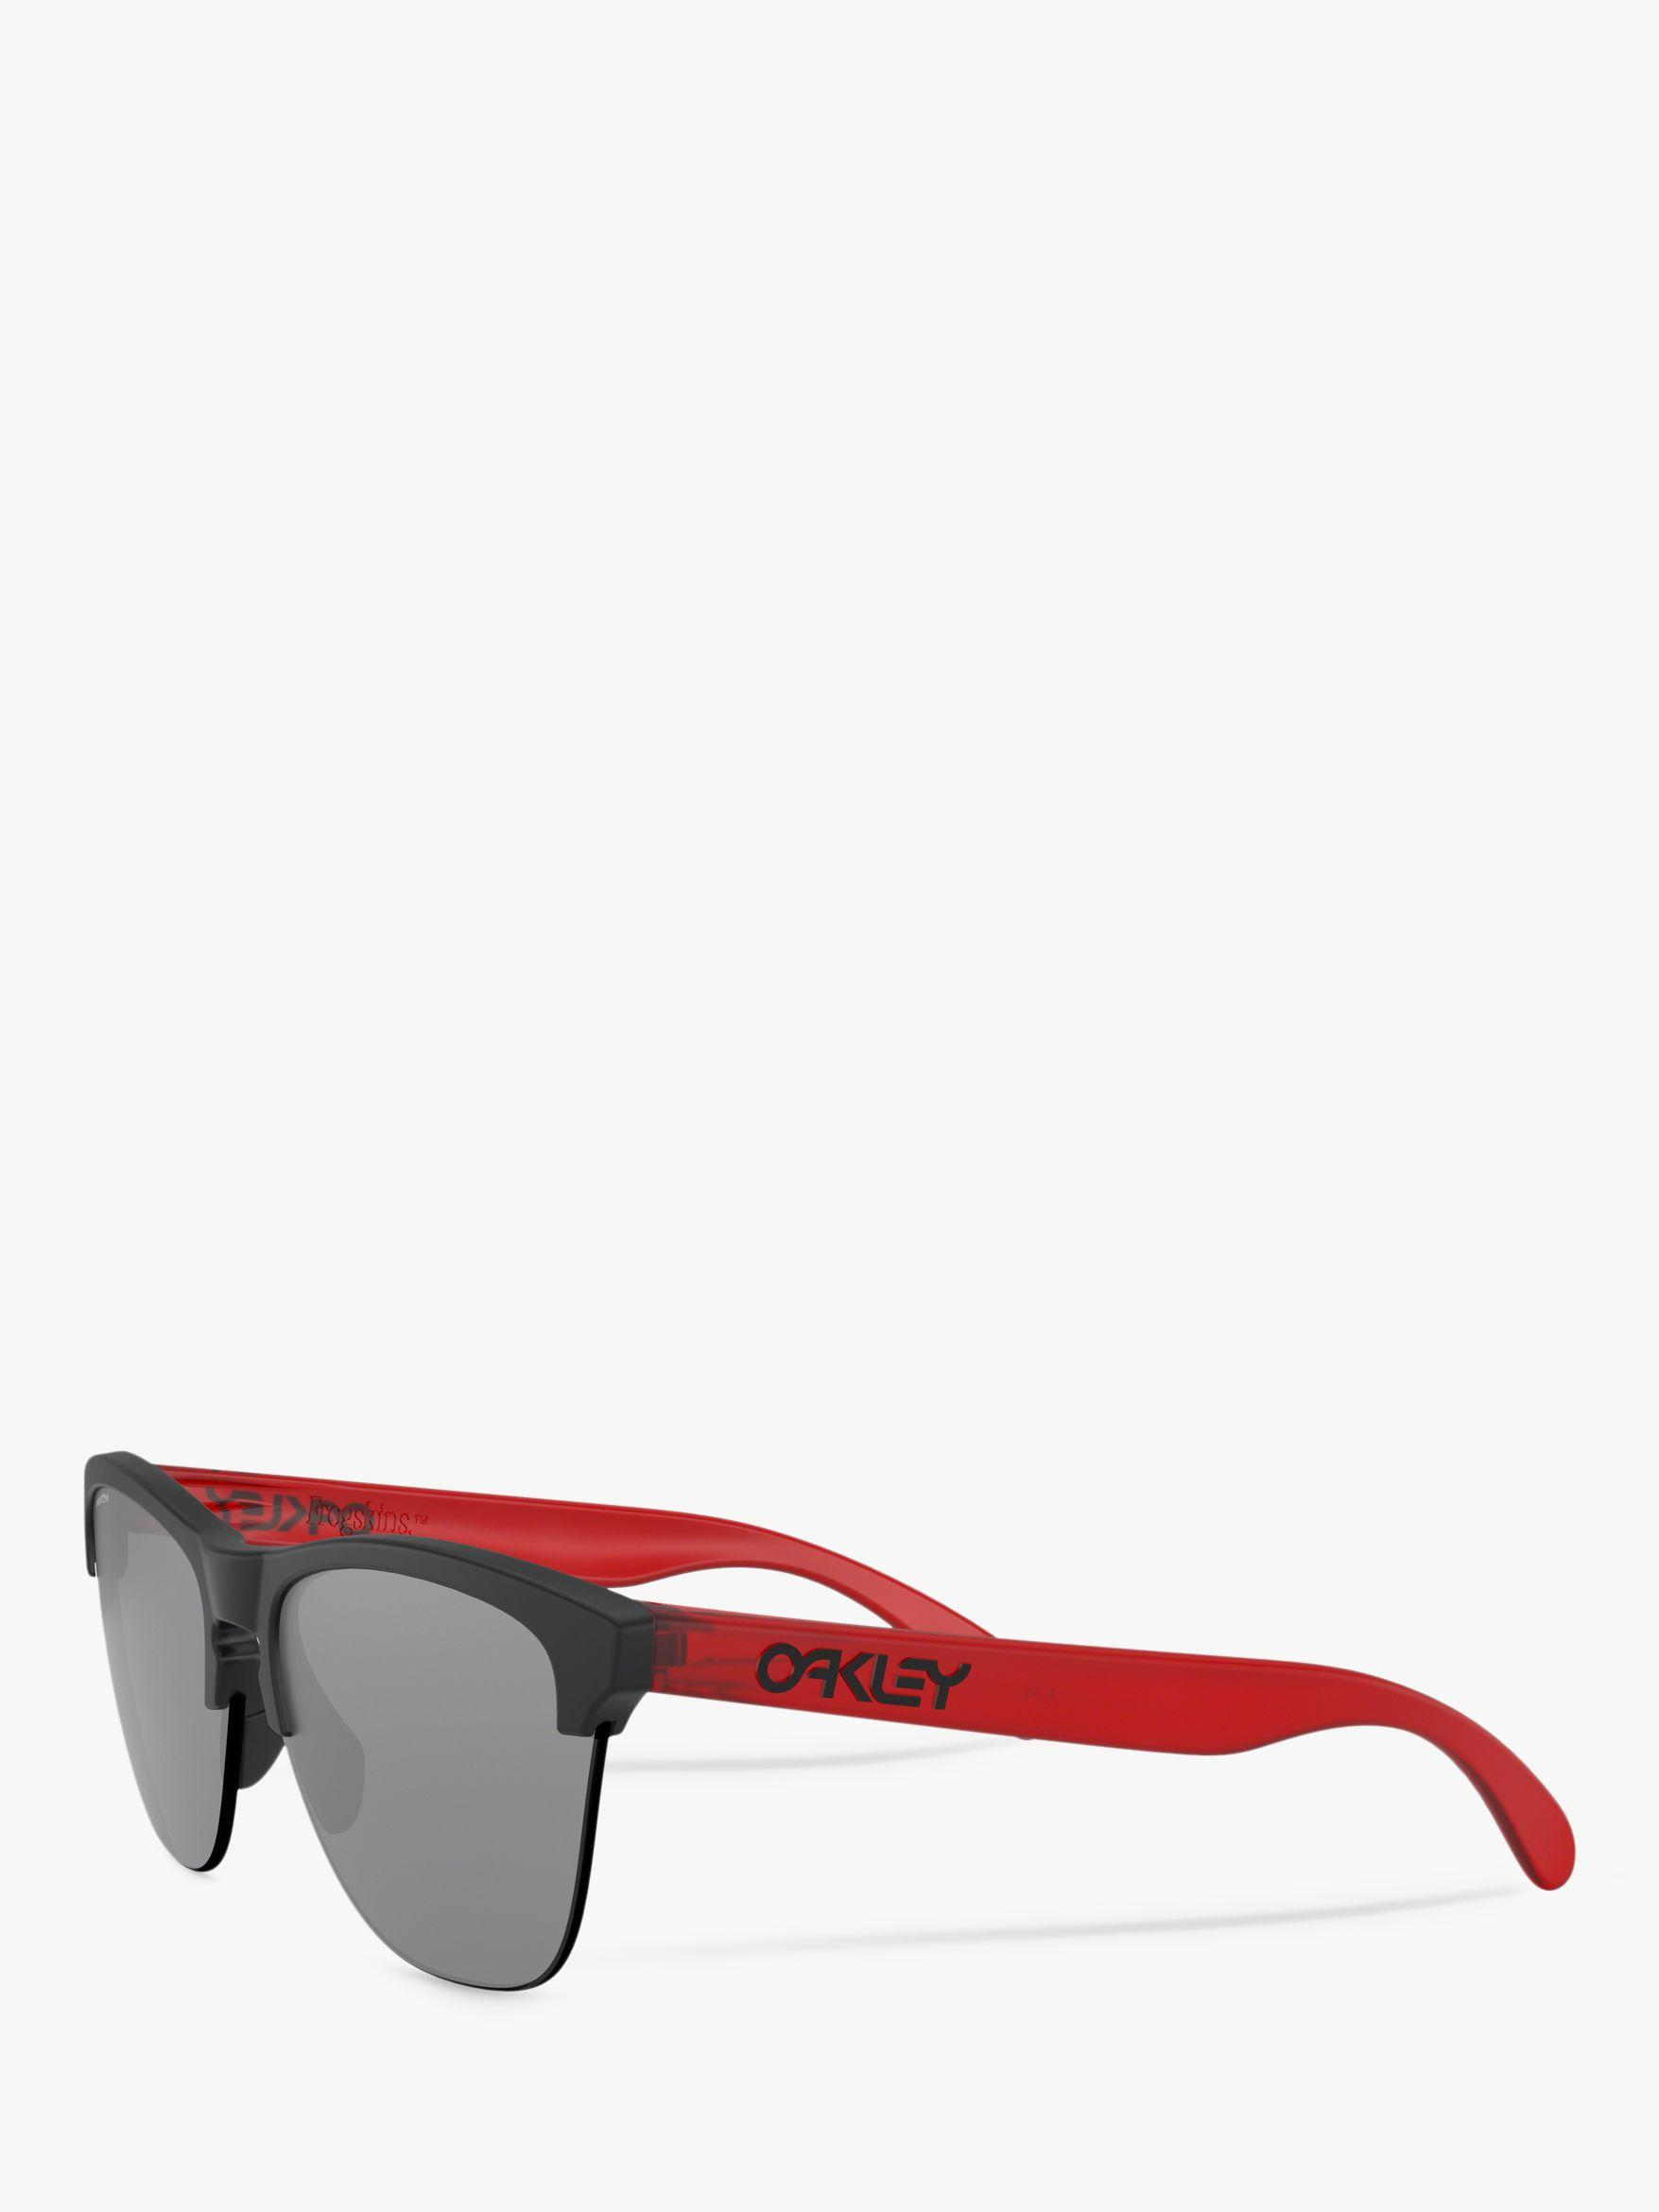 095841376e Oakley Oo9374 Men s Frogskins Lite Round Sunglasses in Red for Men ...